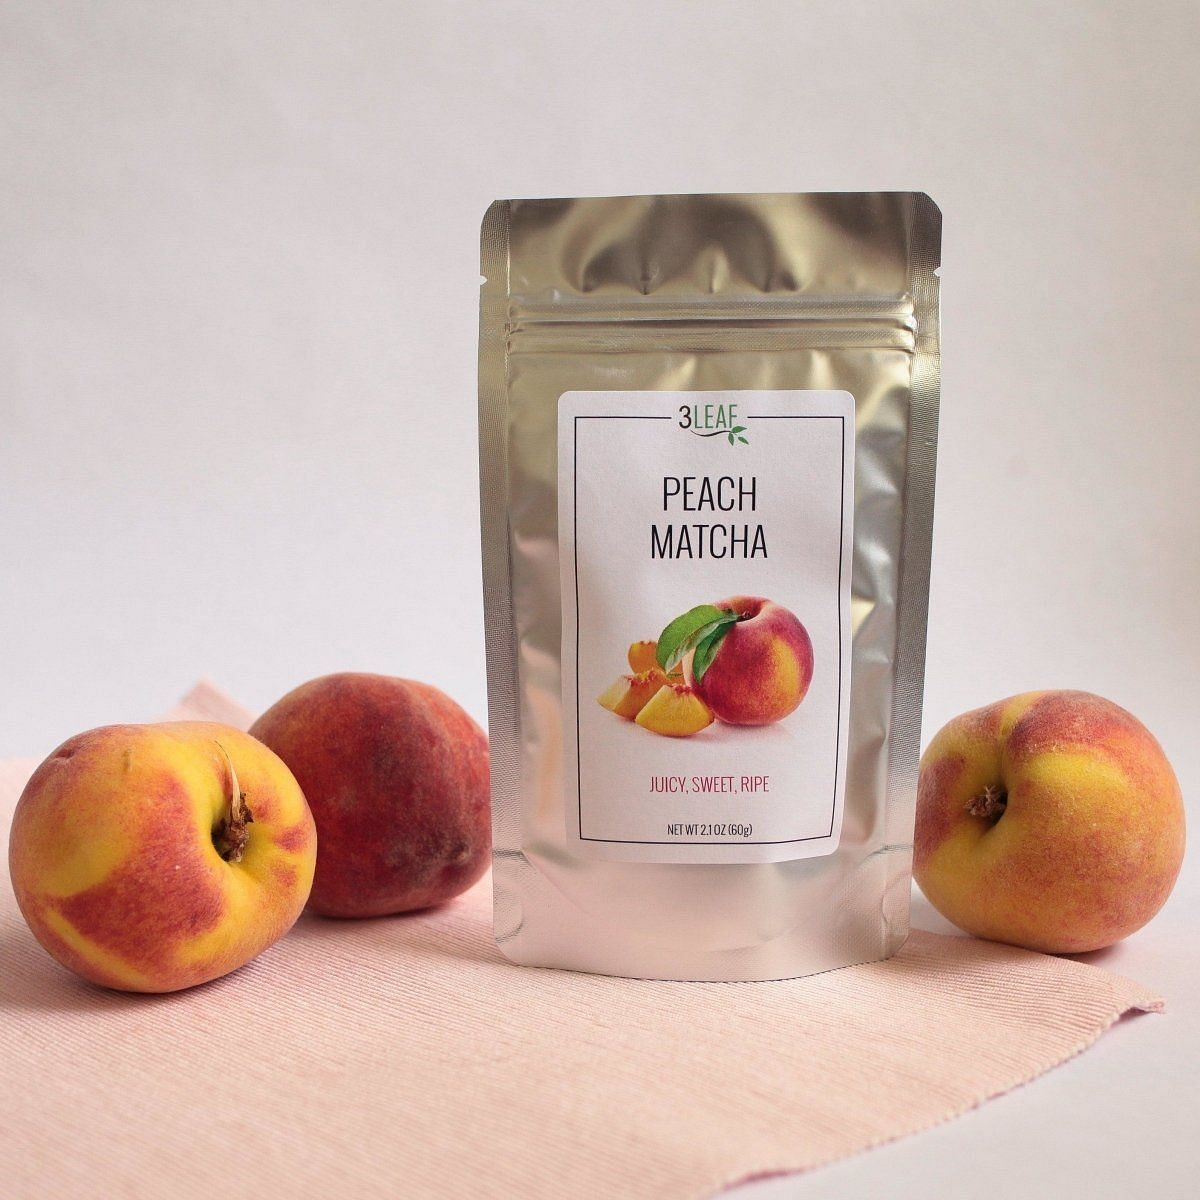 Peach Matcha | 3 Leaf Tea | Flavored Japanese Green Tea